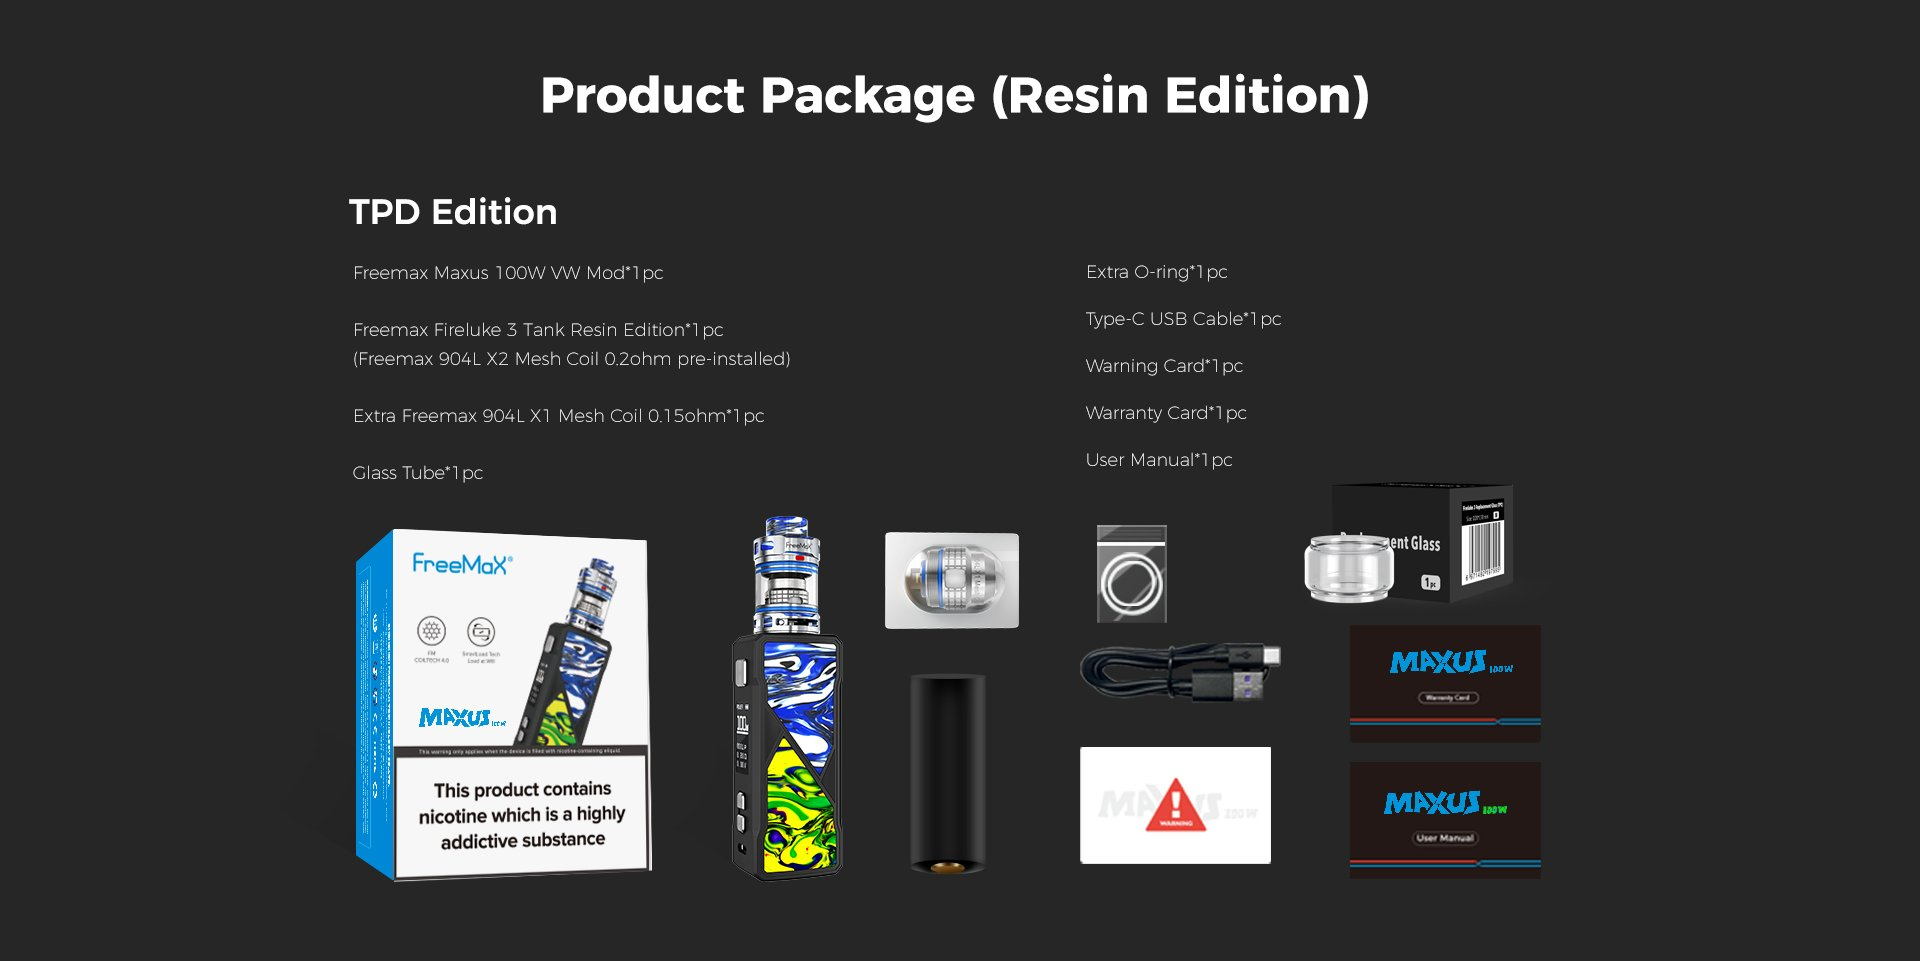 product-package-resin-edition-tpd-edition